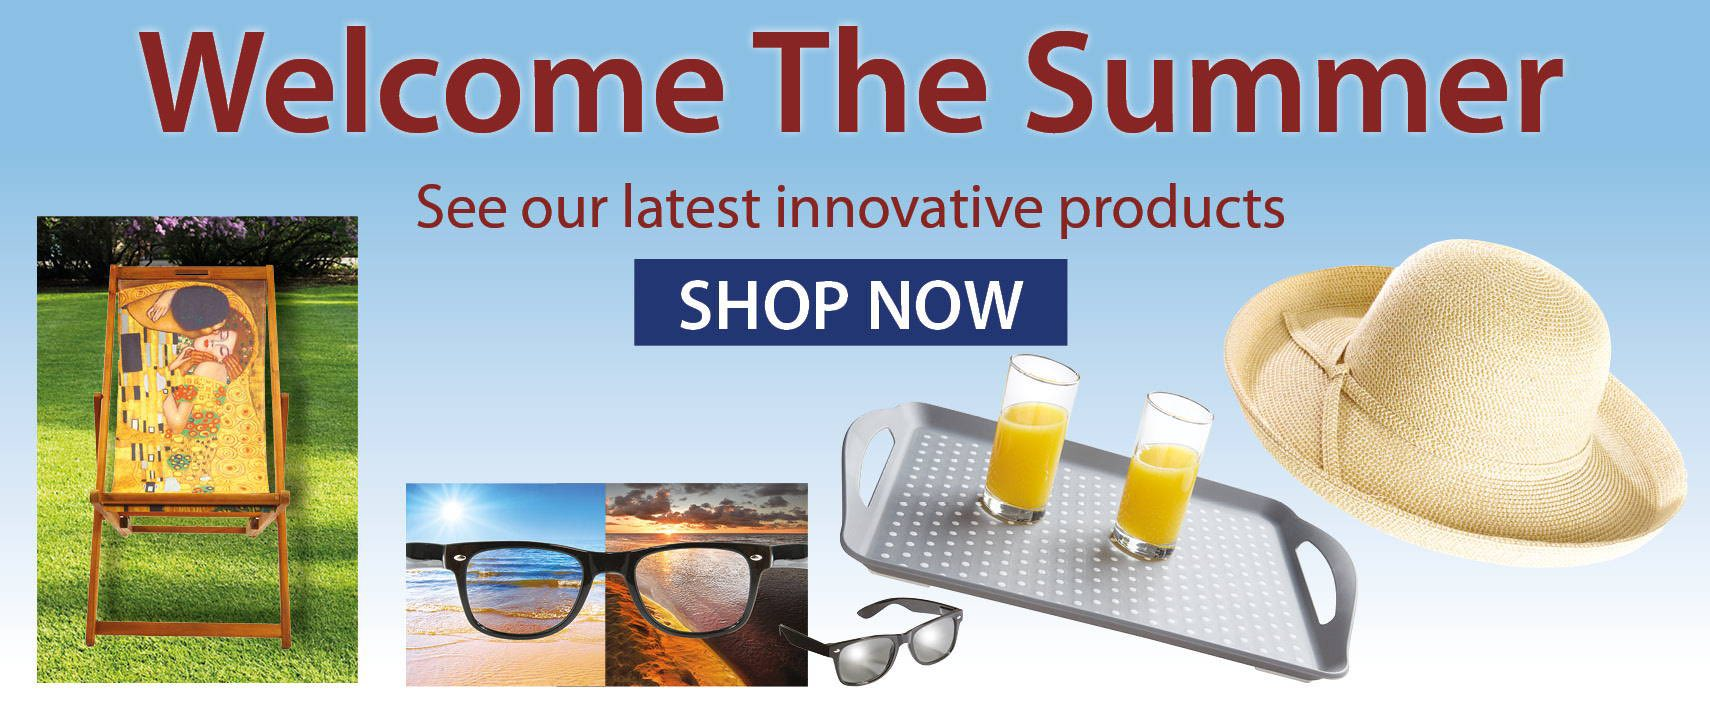 Shop The Latest Innovative Products at Expert Verdict